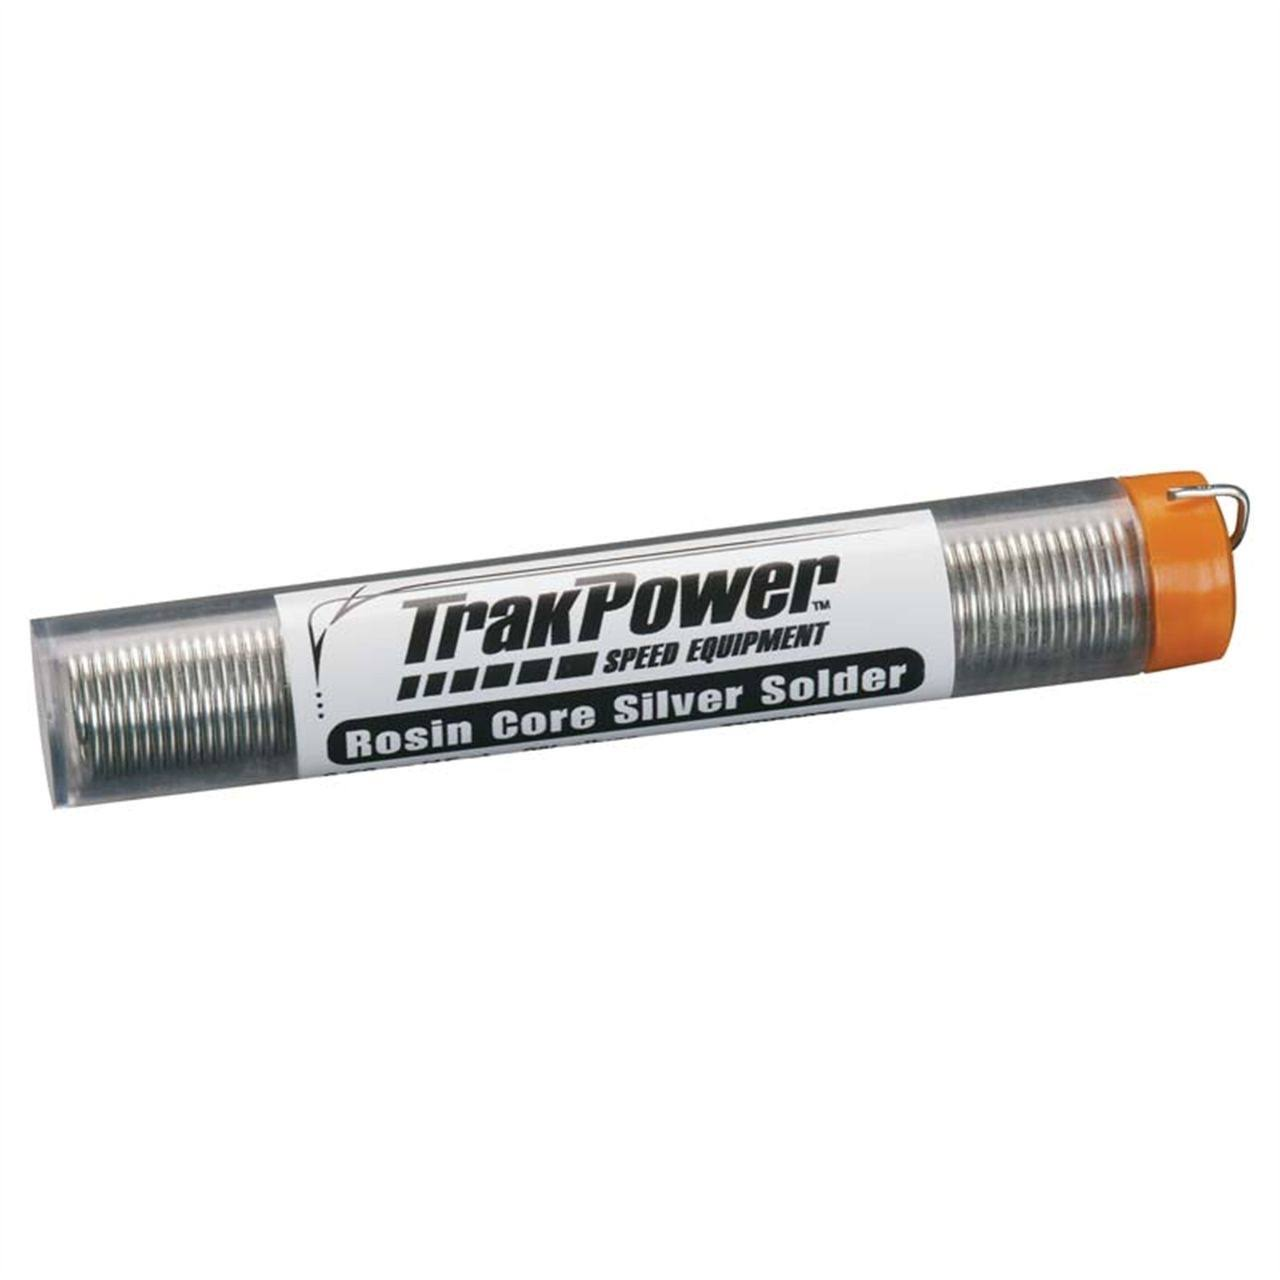 TrakPower Rosin Core Lead Free Silver Solder - 15g